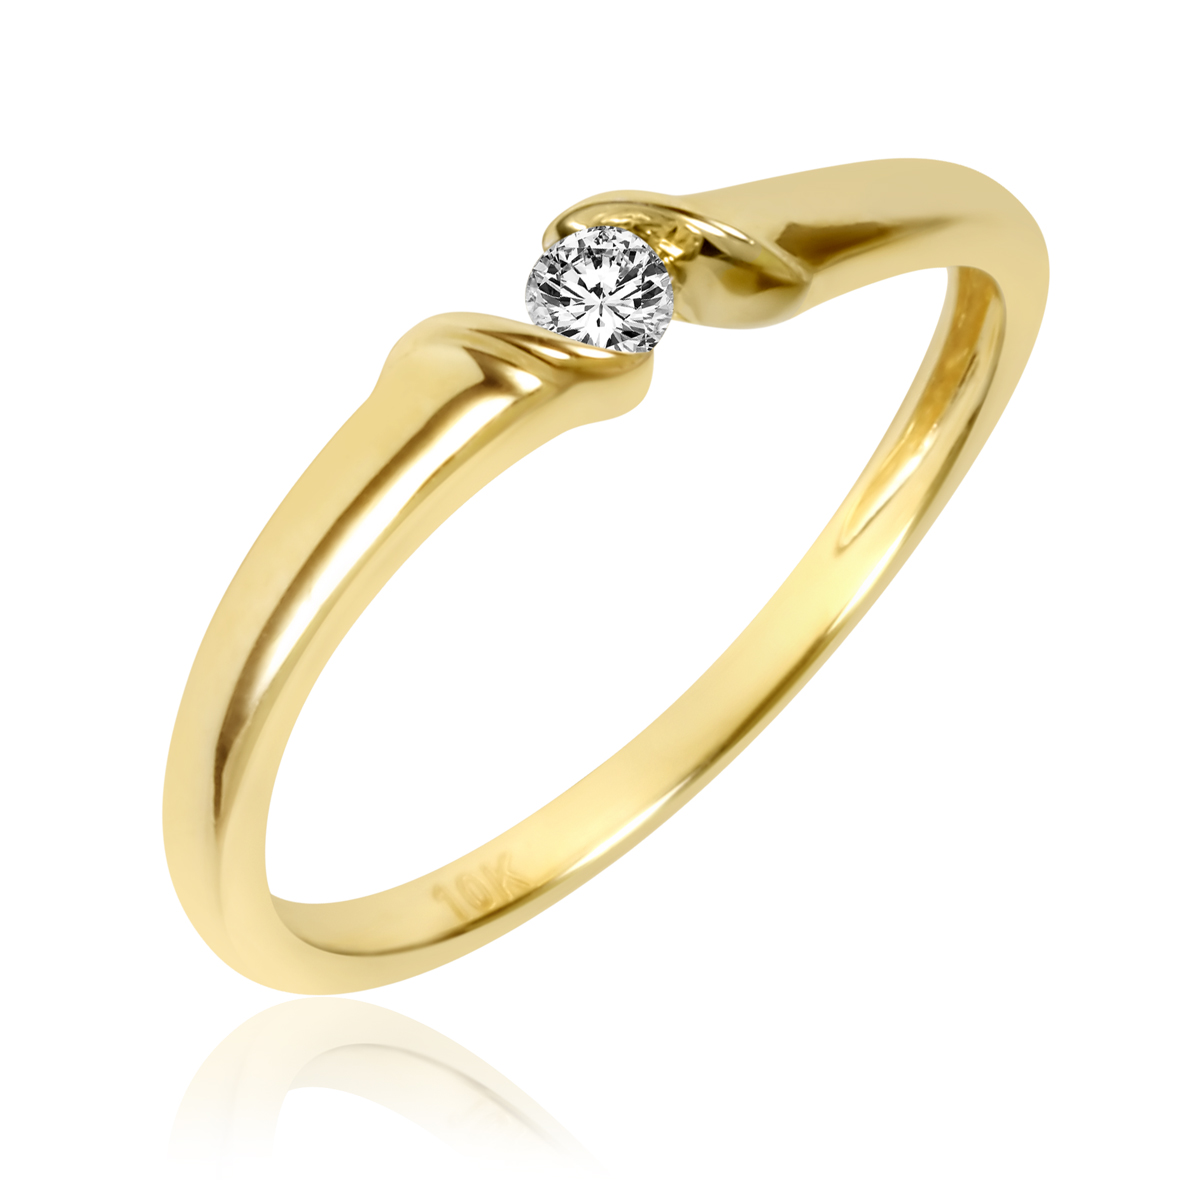 10 Carat Tw Diamond Ladies Promise Ring 10k Yellow Gold  My Trio Rings